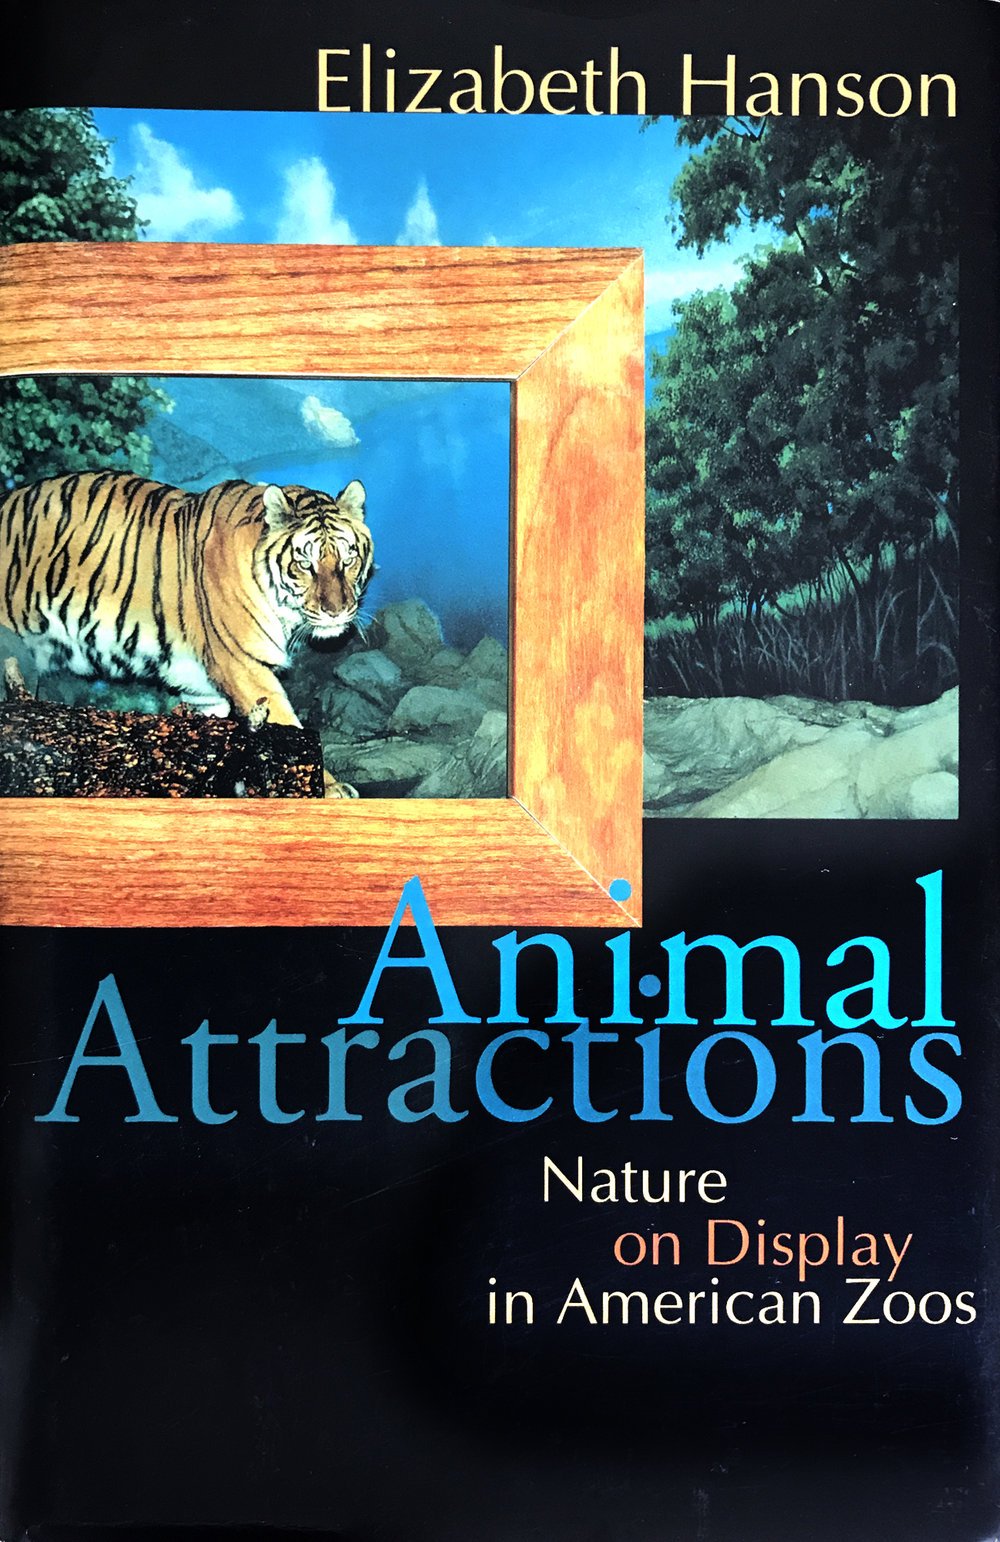 Animal Attractions: Nature on Display in American Zoos (Princeton University Press, 2002) - A deeply researched exploration of how, historically, American zoos have interpreted nature for urban audiencesReviews: